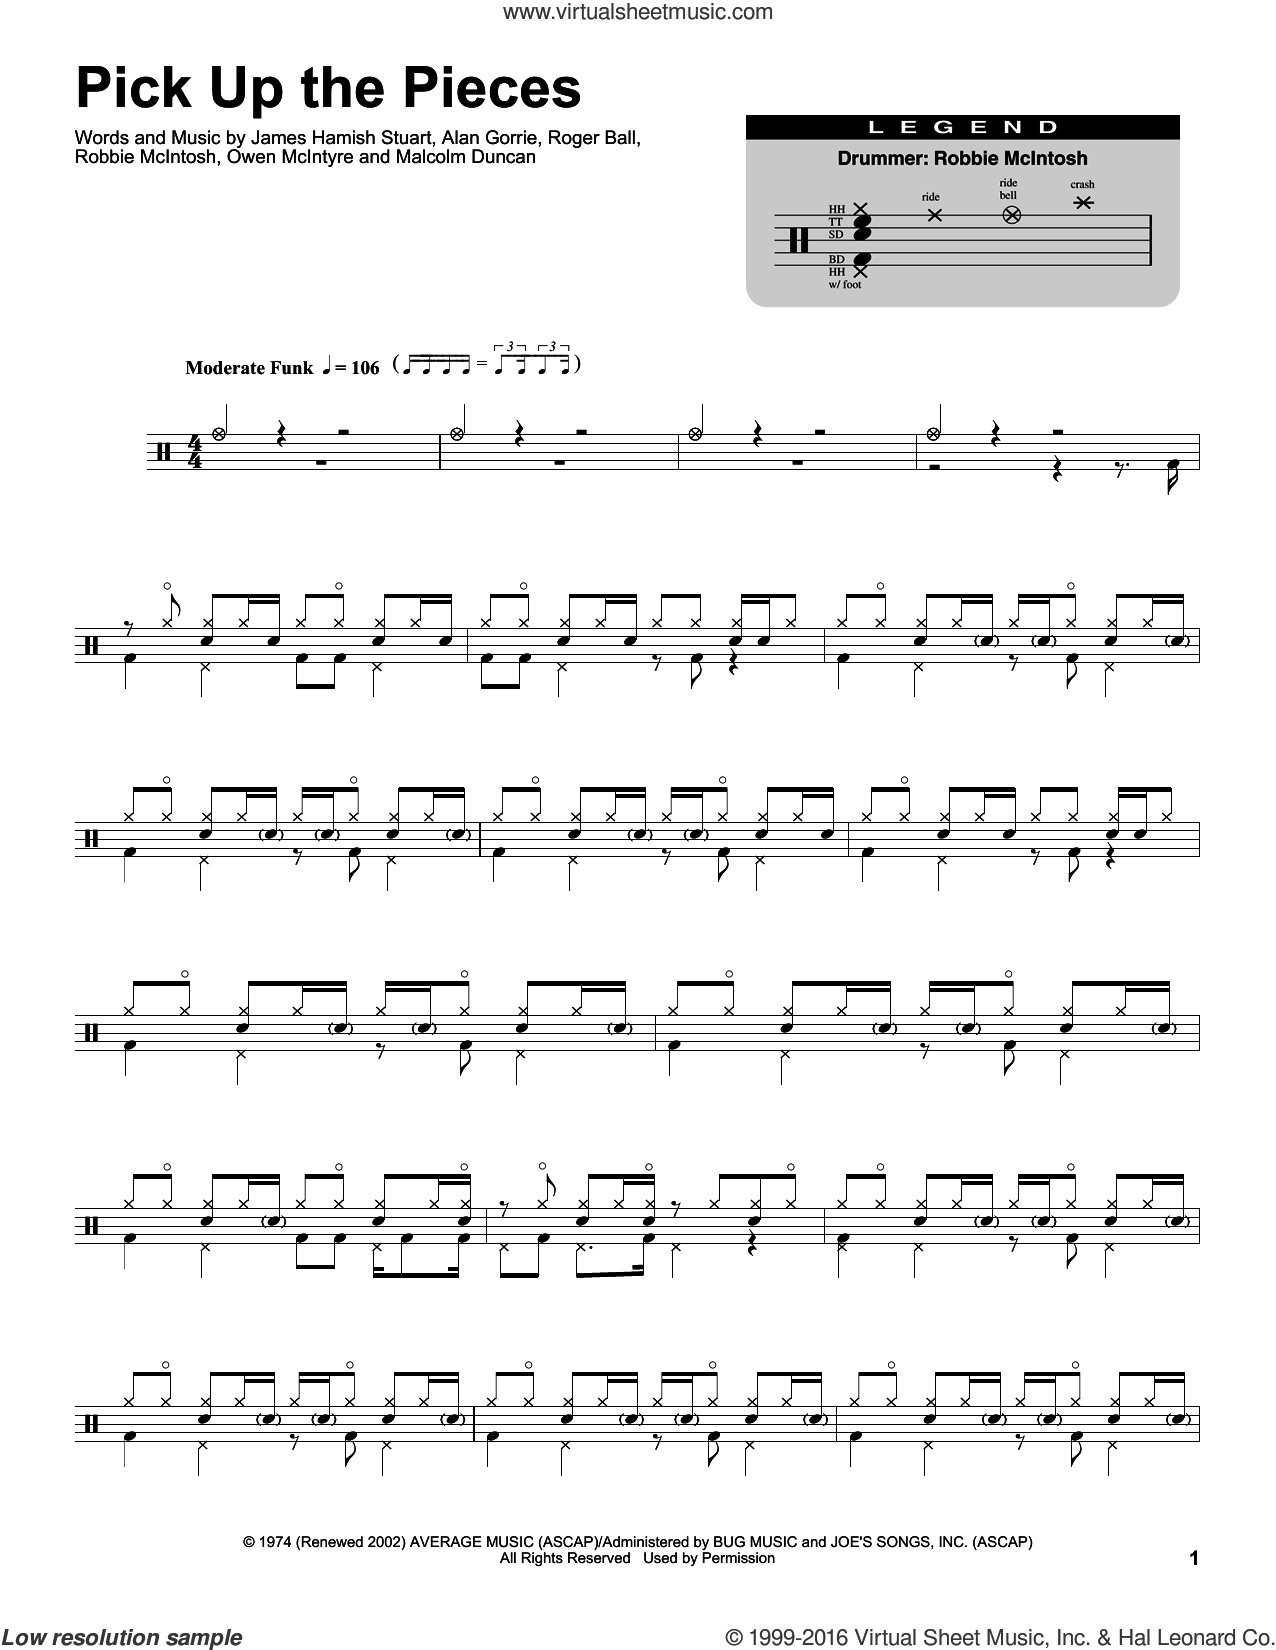 Pick Up The Pieces sheet music for drums by Average White Band, Alan Gorrie, James Hamish Stuart, Malcolm Duncan, Owen McIntyre, Robbie McIntosh and Roger Ball, intermediate skill level